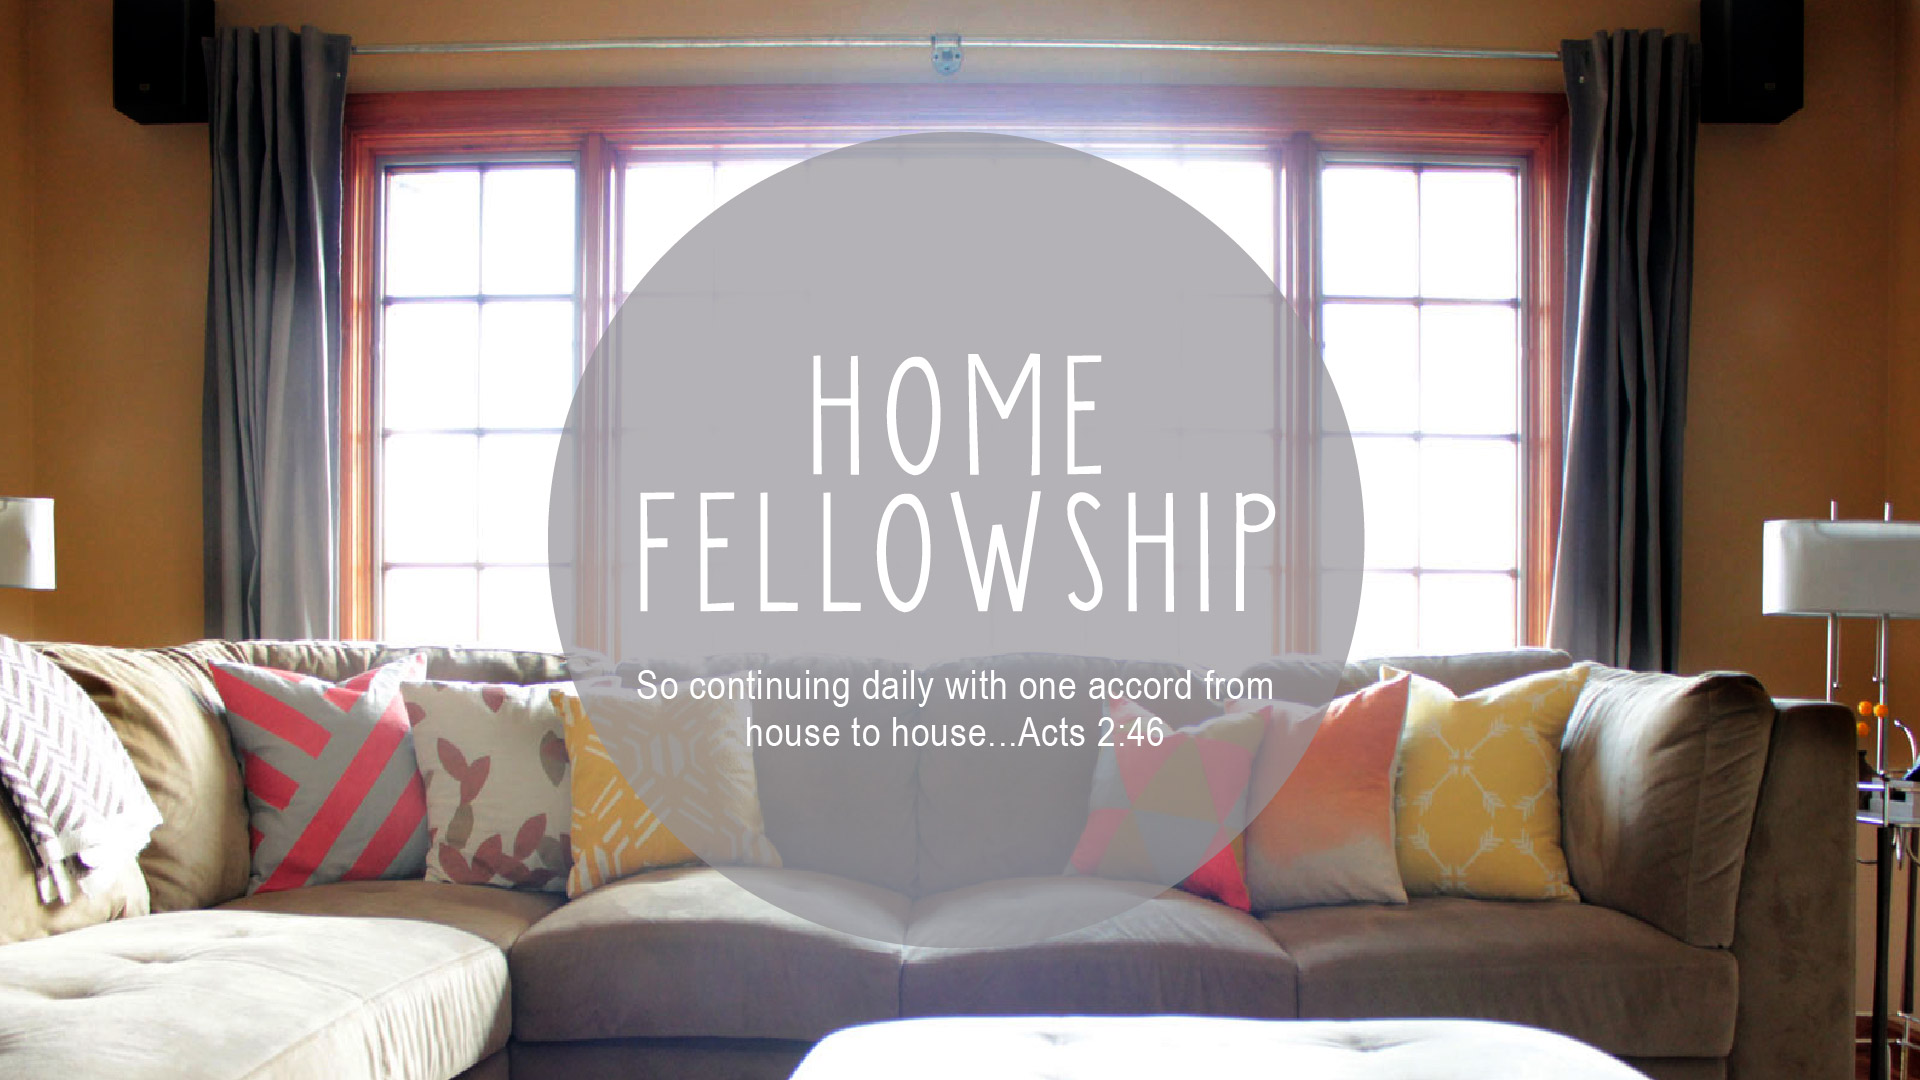 House Fellowship